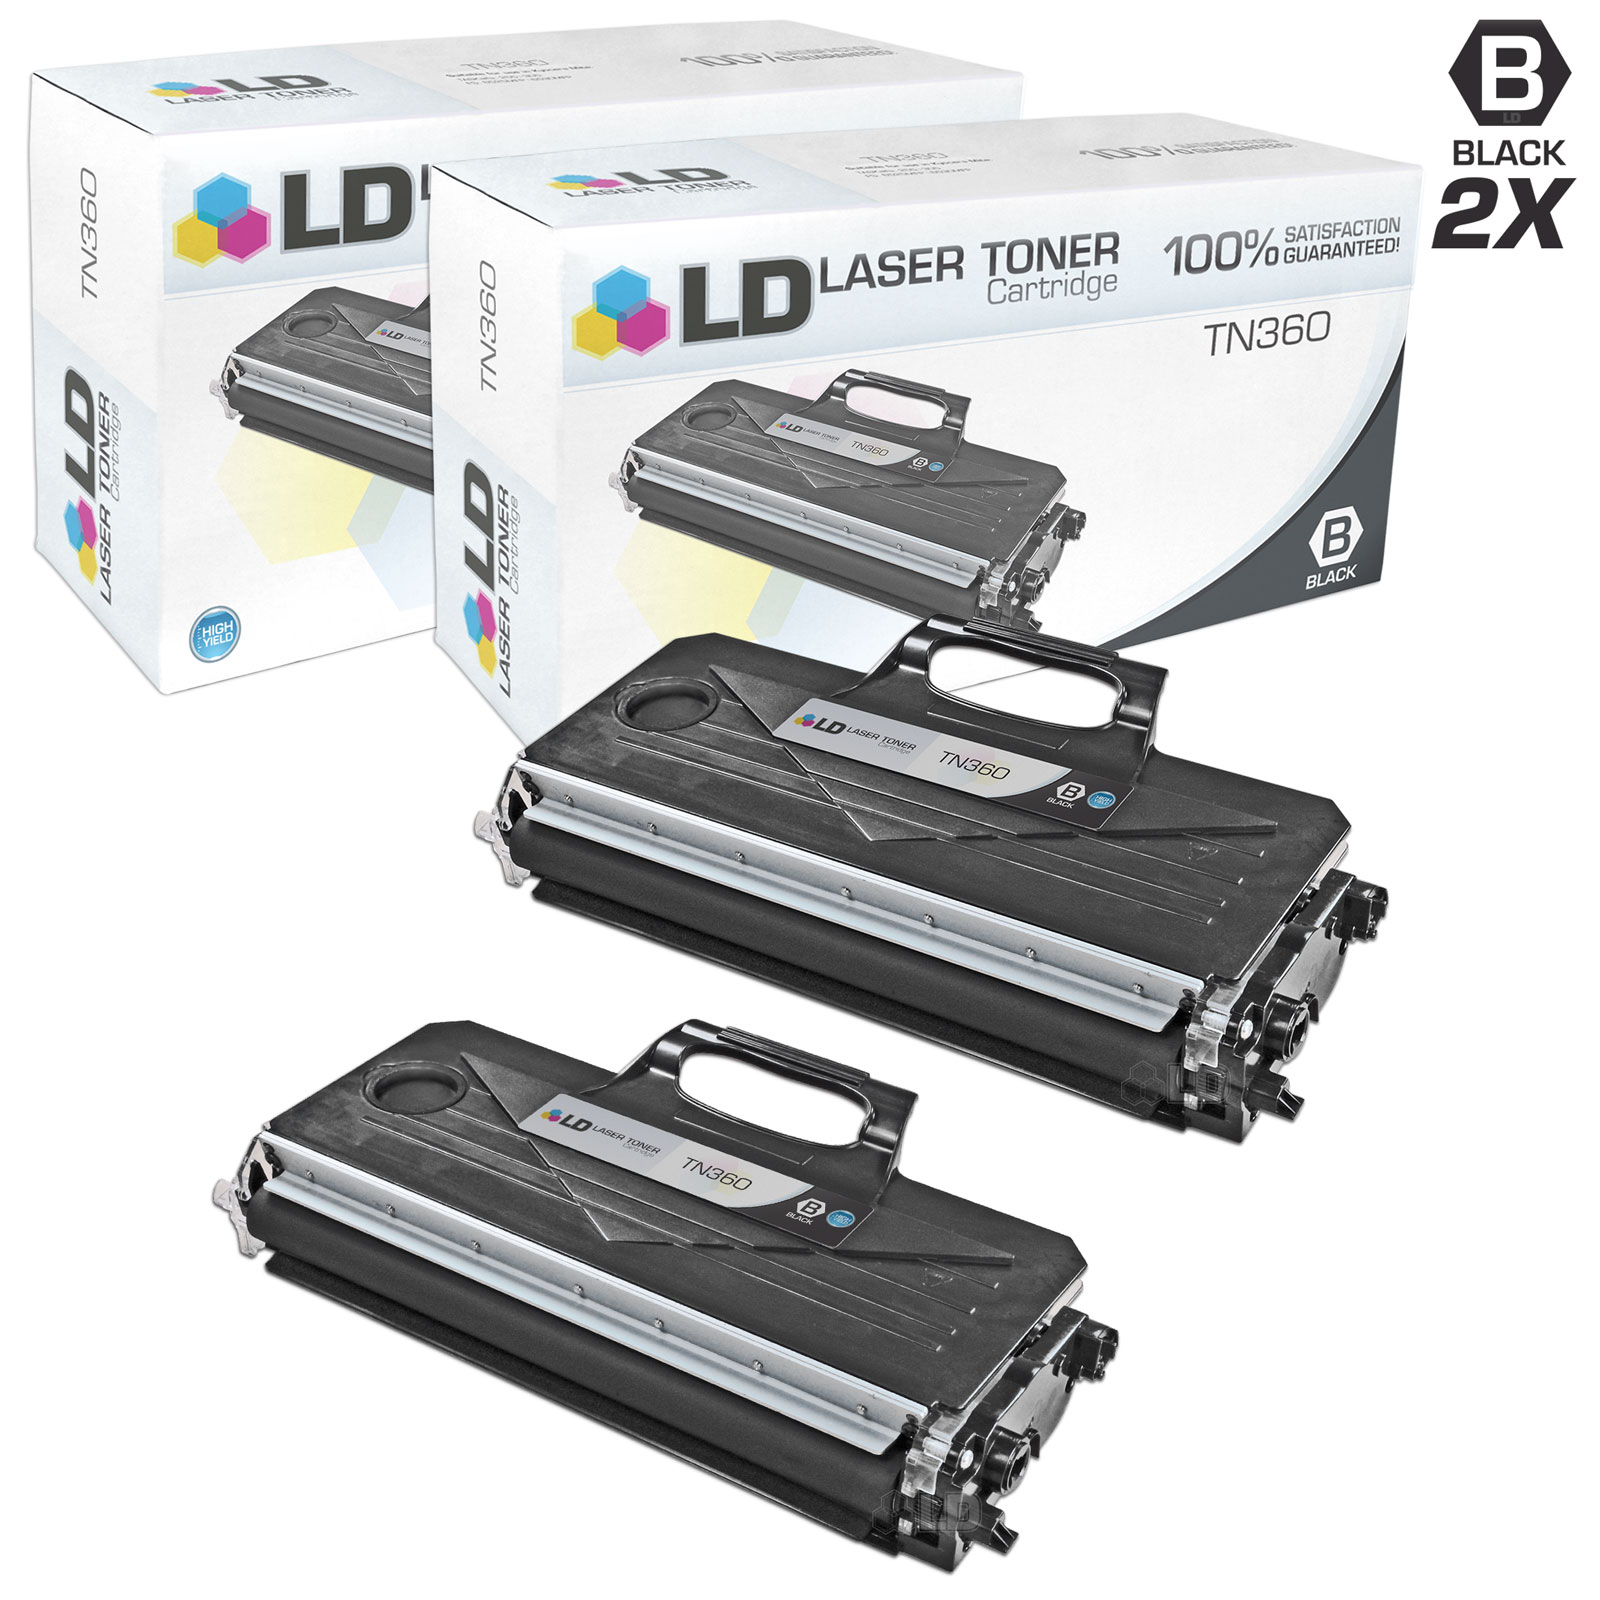 LD Compatible Brother TN360 (TN330) Set of 2 Black Toner Cartridges for DCP-7030, DCP-7040, DCP-7045N, HL-2140,